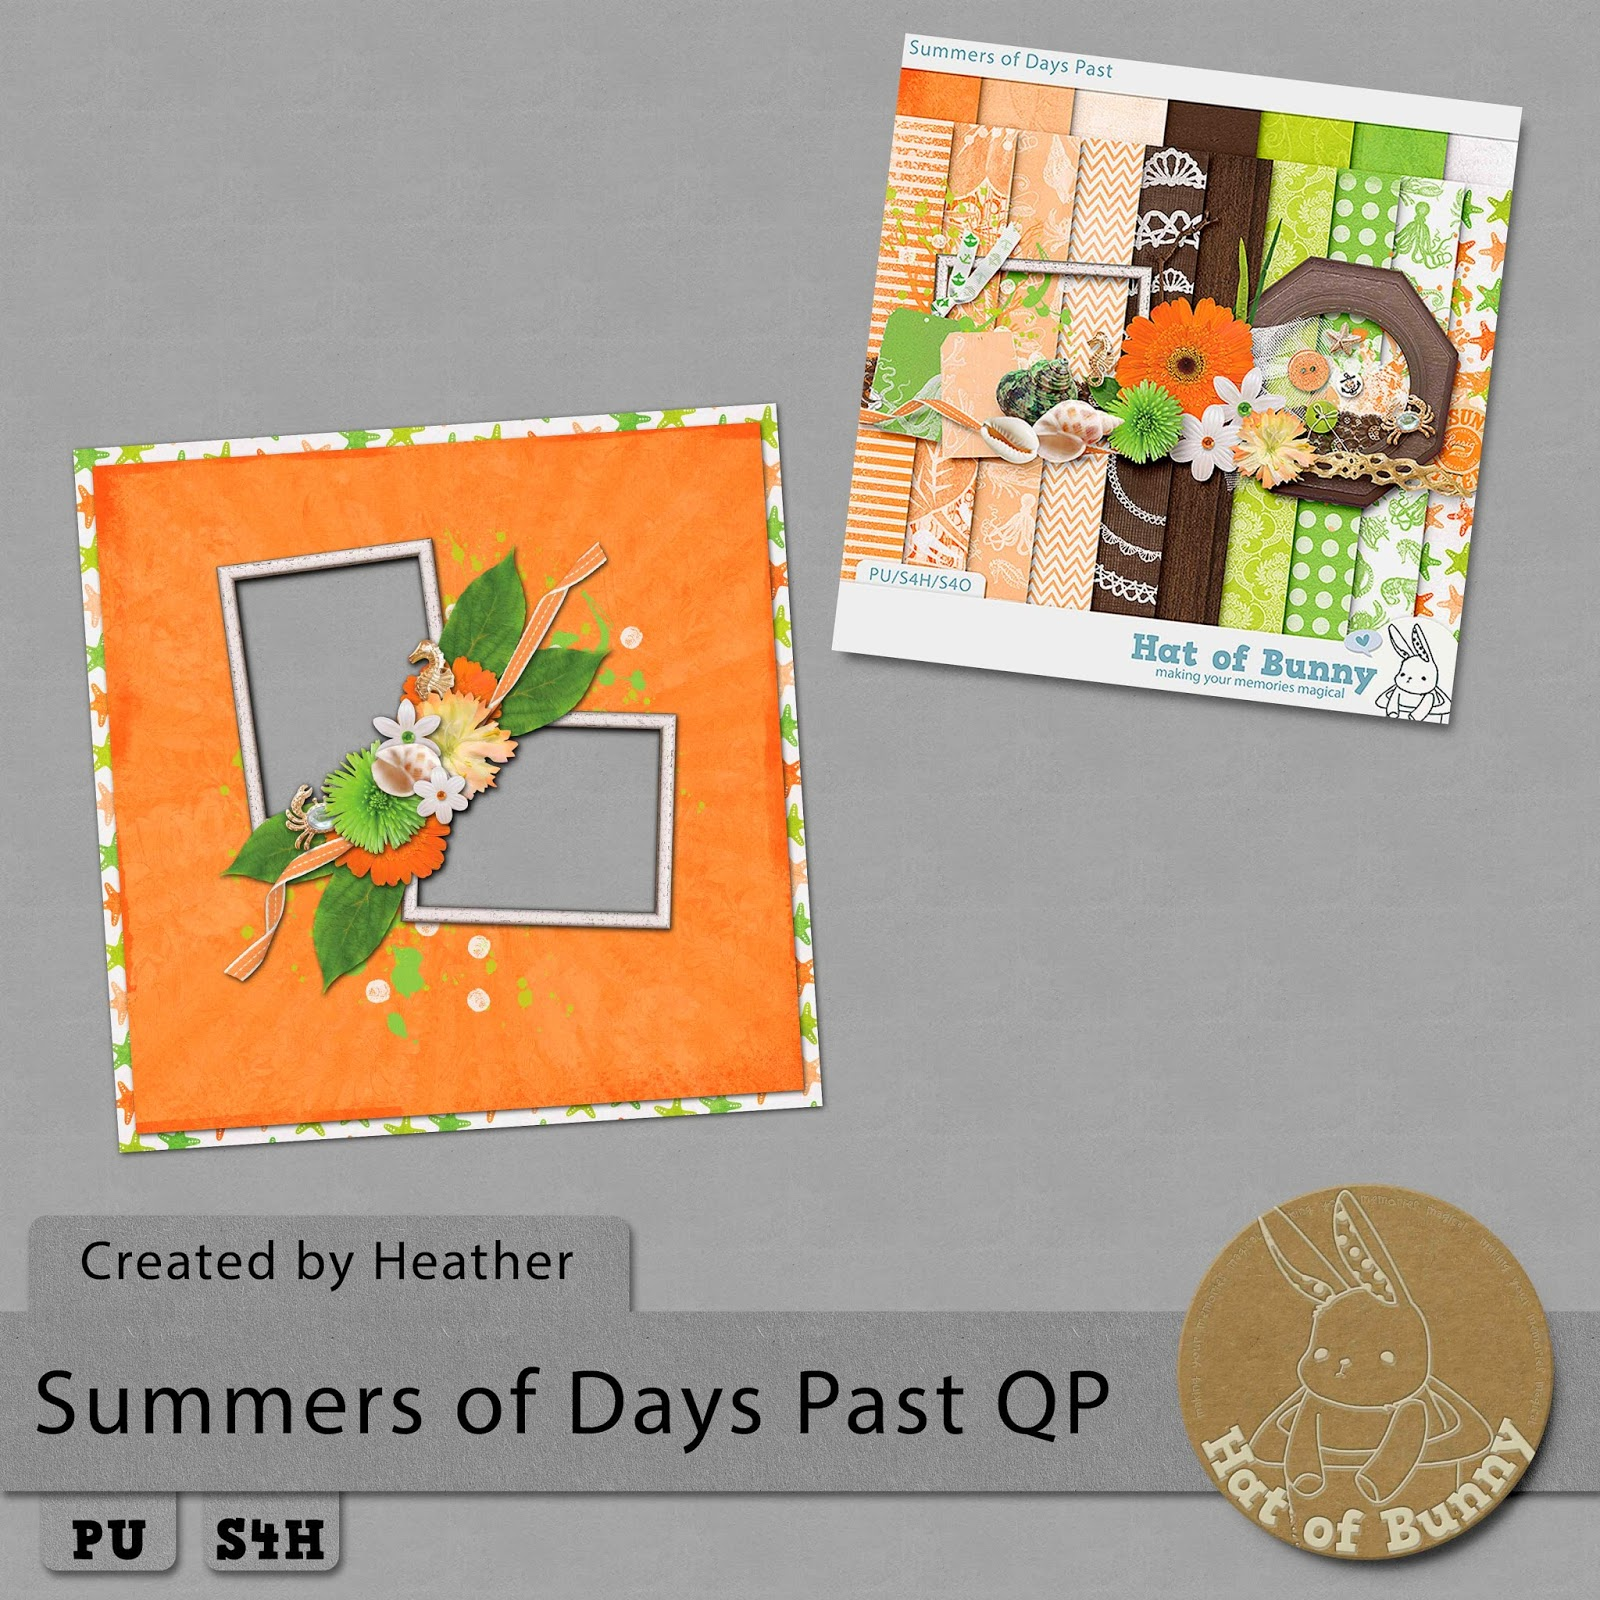 http://www.mediafire.com/download/57szhknuy58slw0/Summers_of_Days_Past_Freebie.zip